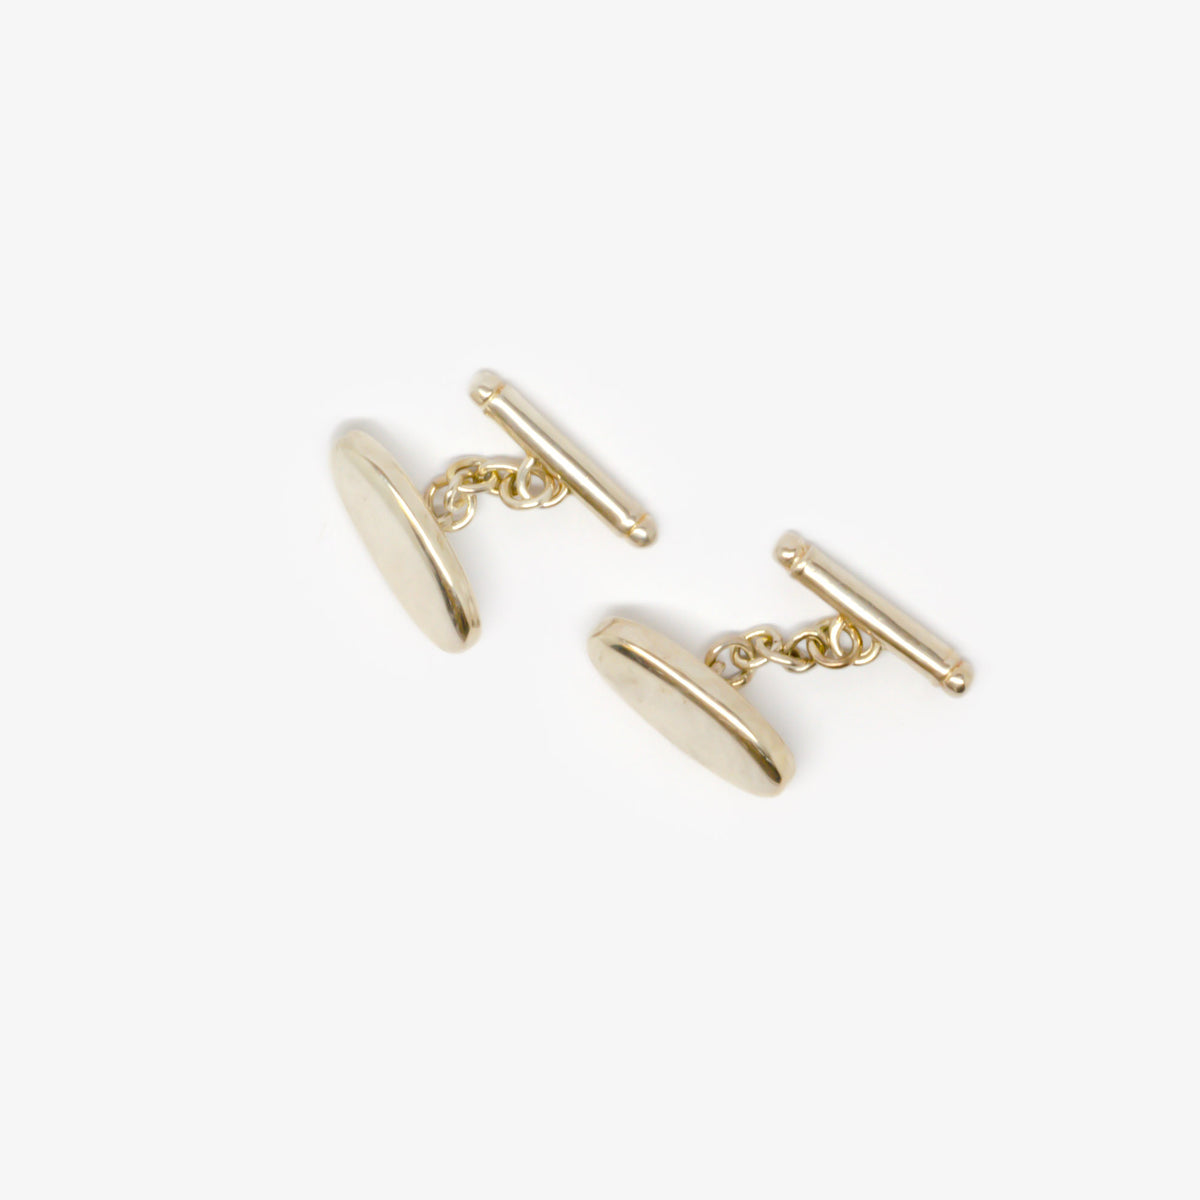 Silver Oval Chain Bar Cufflinks